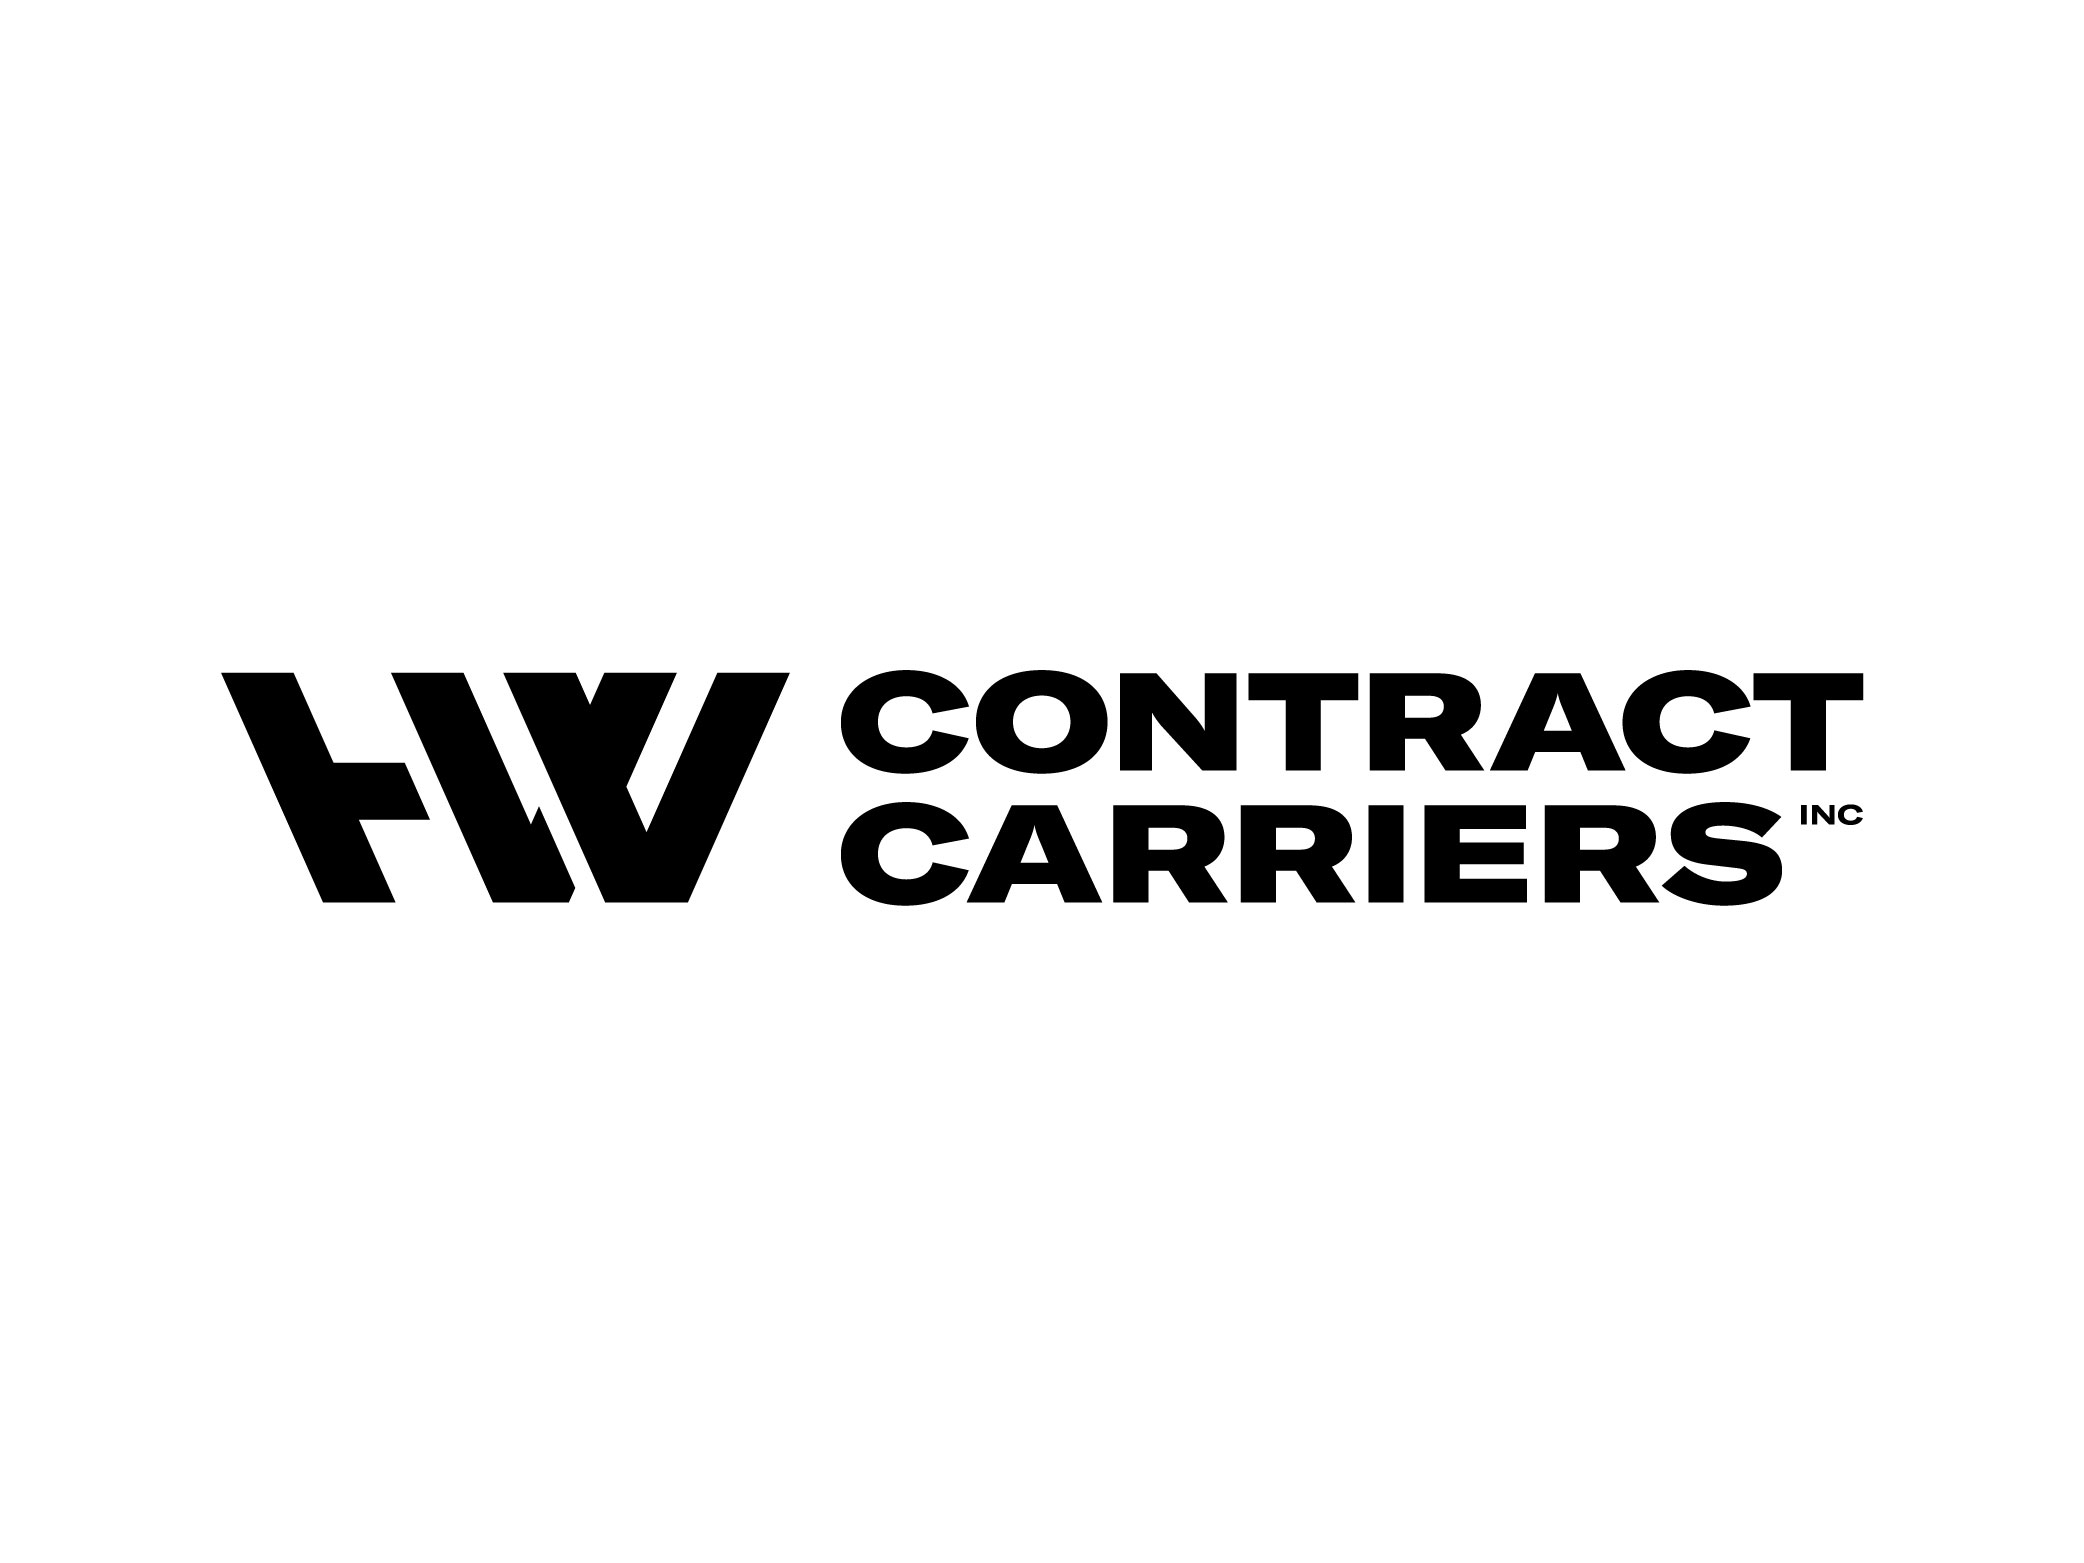 Studio Freight - H&W Contract Carriers Logo